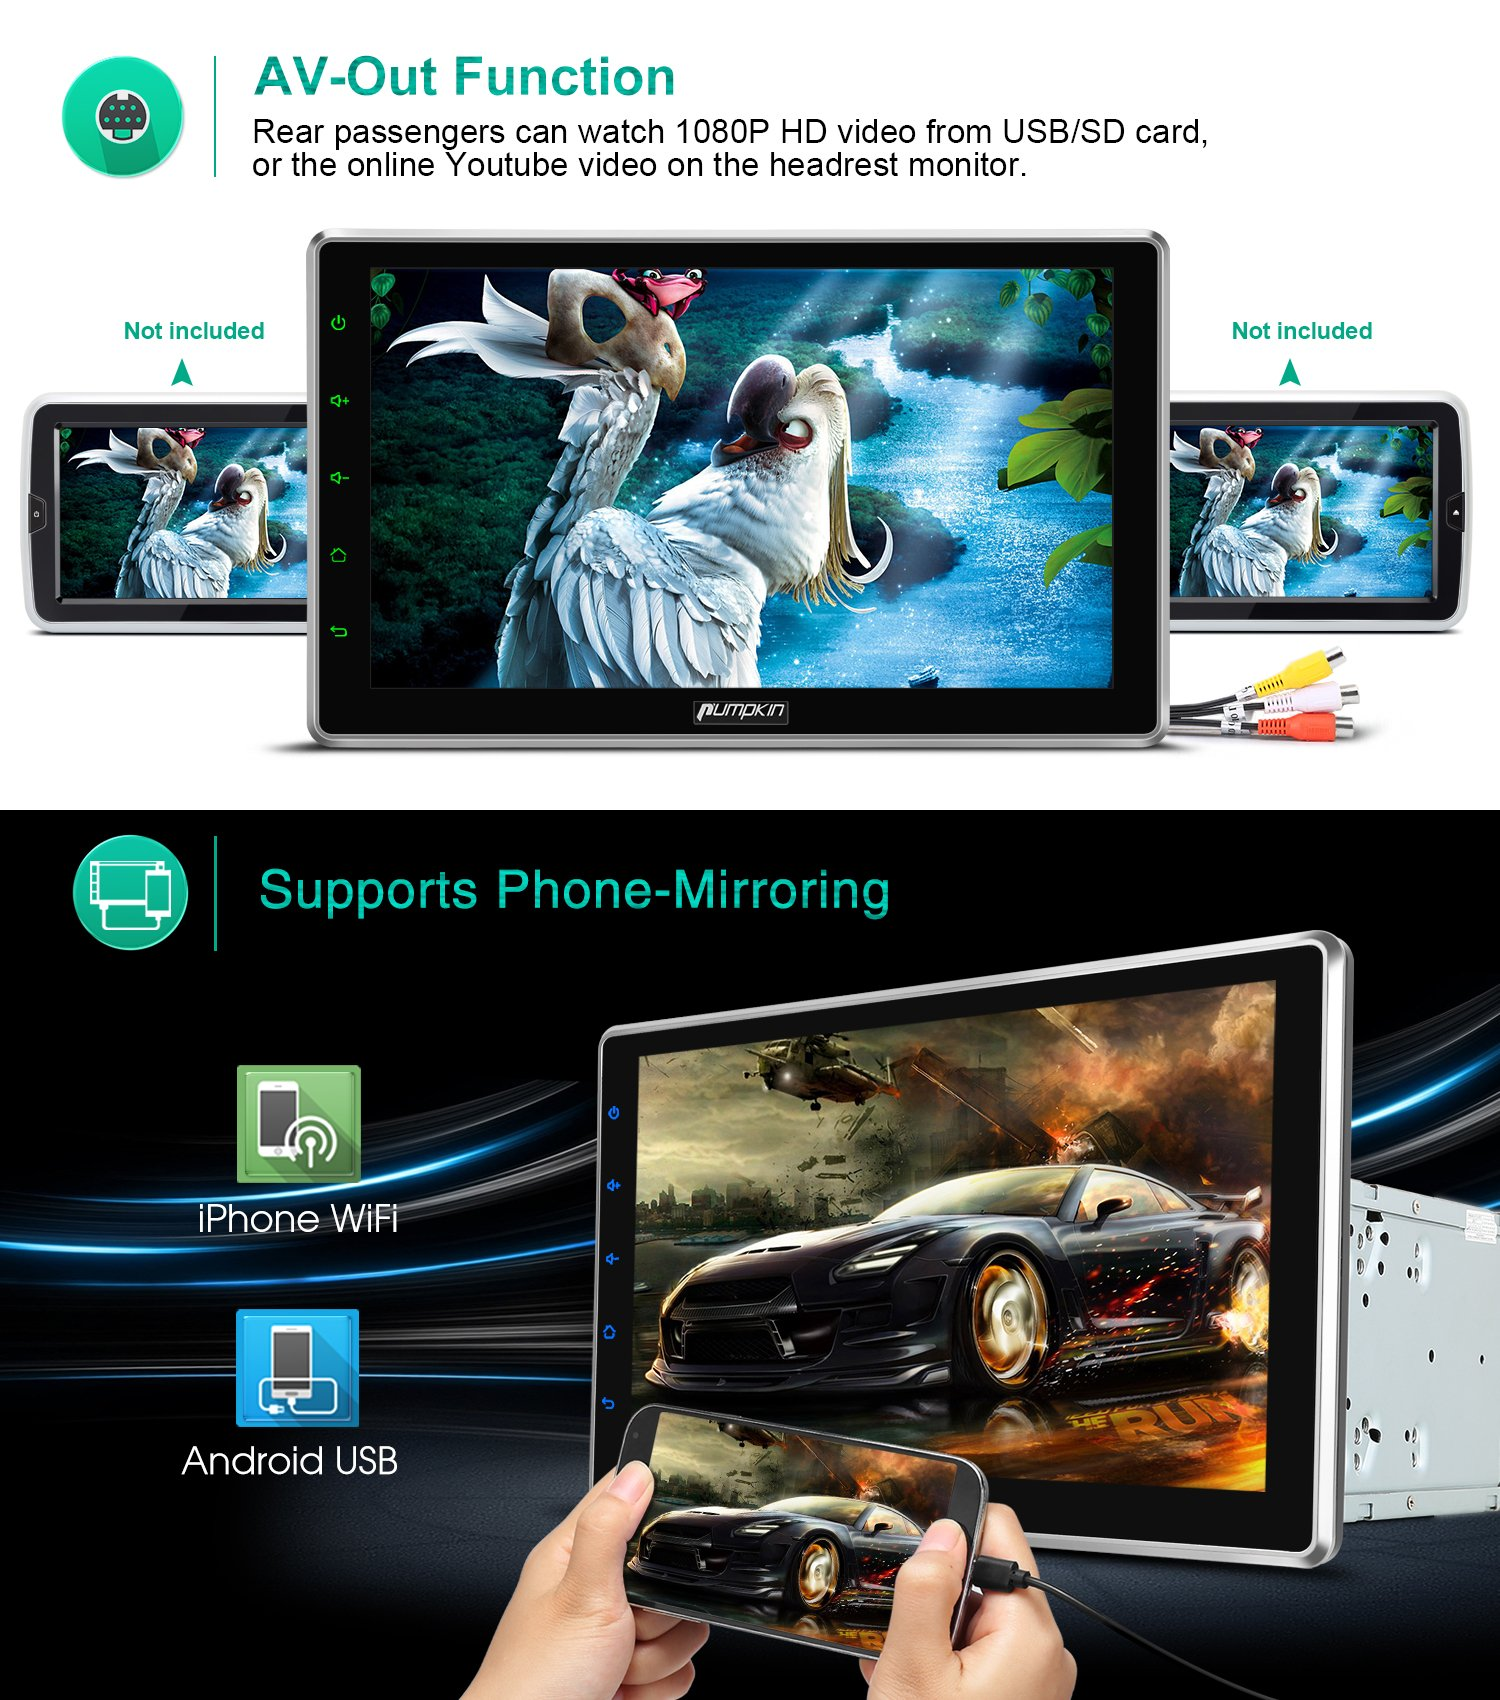 "10.1"" Android 7.1 2GB 32GB Double Din Car Stereo Radio with Bluetooth, GPS Navigation - Support Fastboot, 3G WIFI, USB SD, MirrorLink, Backup camera, AUX, Subwoofer, OBD2, DVR by PUMPKIN (Image #4)"